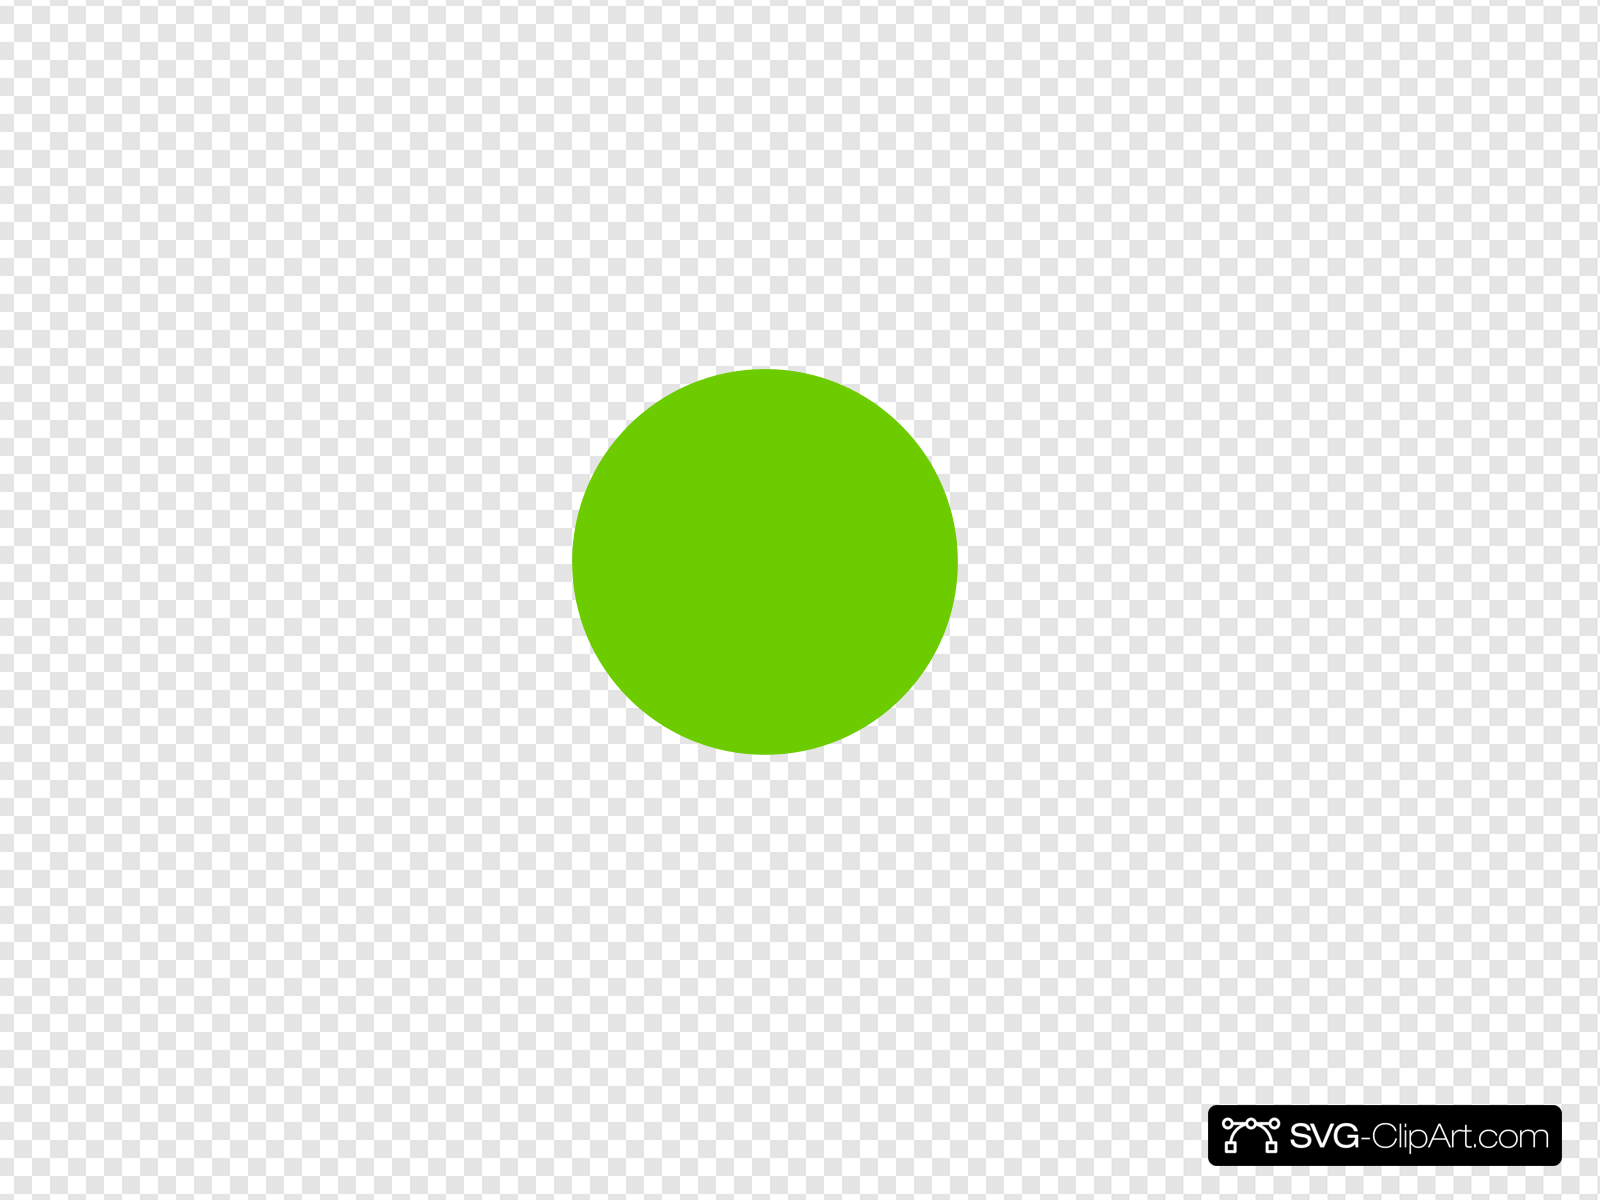 Green Dot Clip art, Icon and SVG.